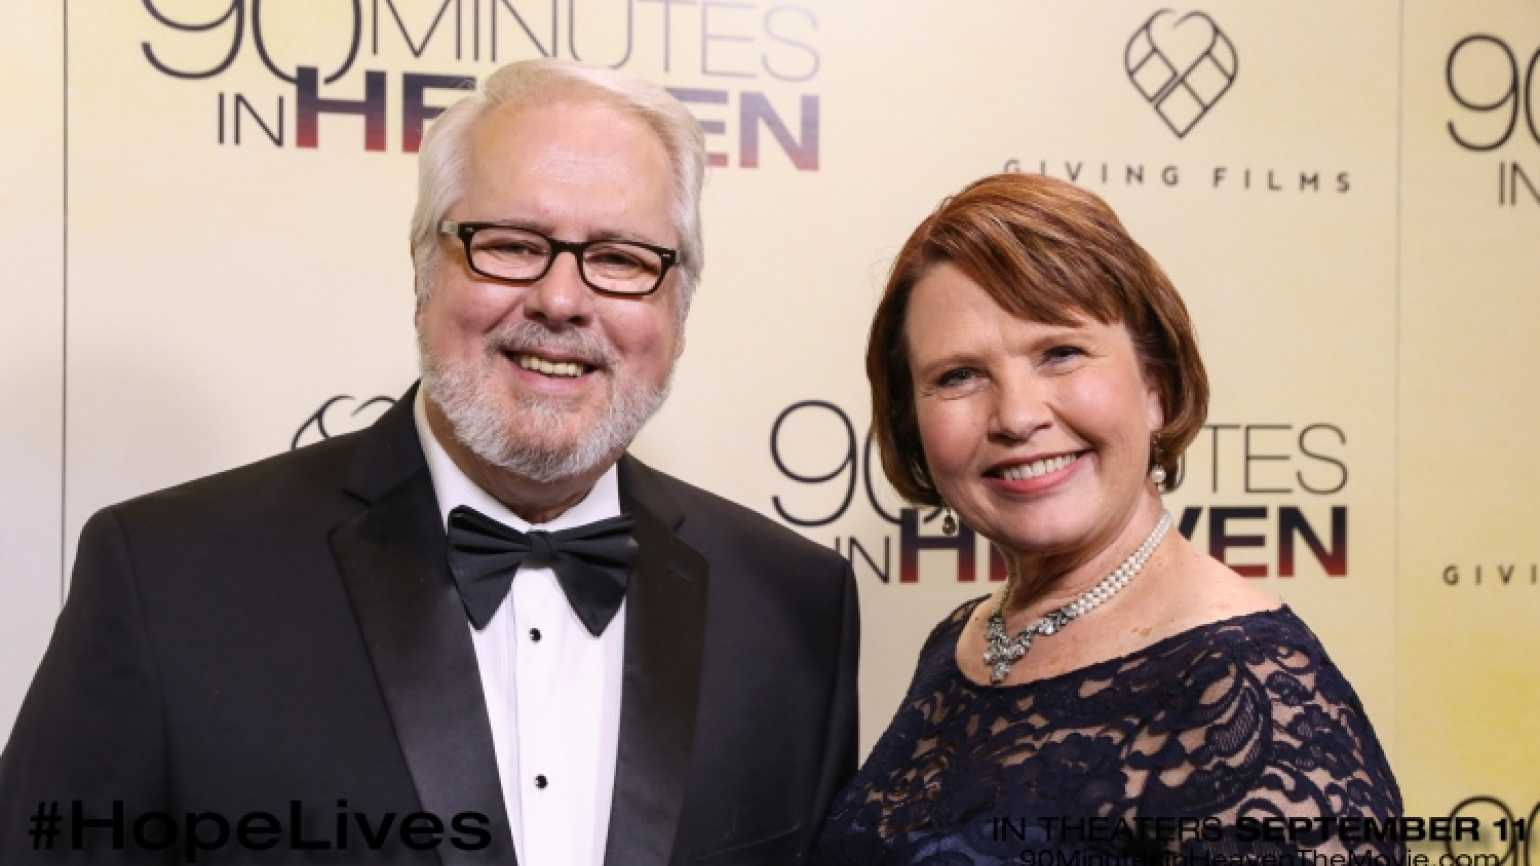 Don Piper and his wife Eva at the Premiere of 90 MInutes in Heaven